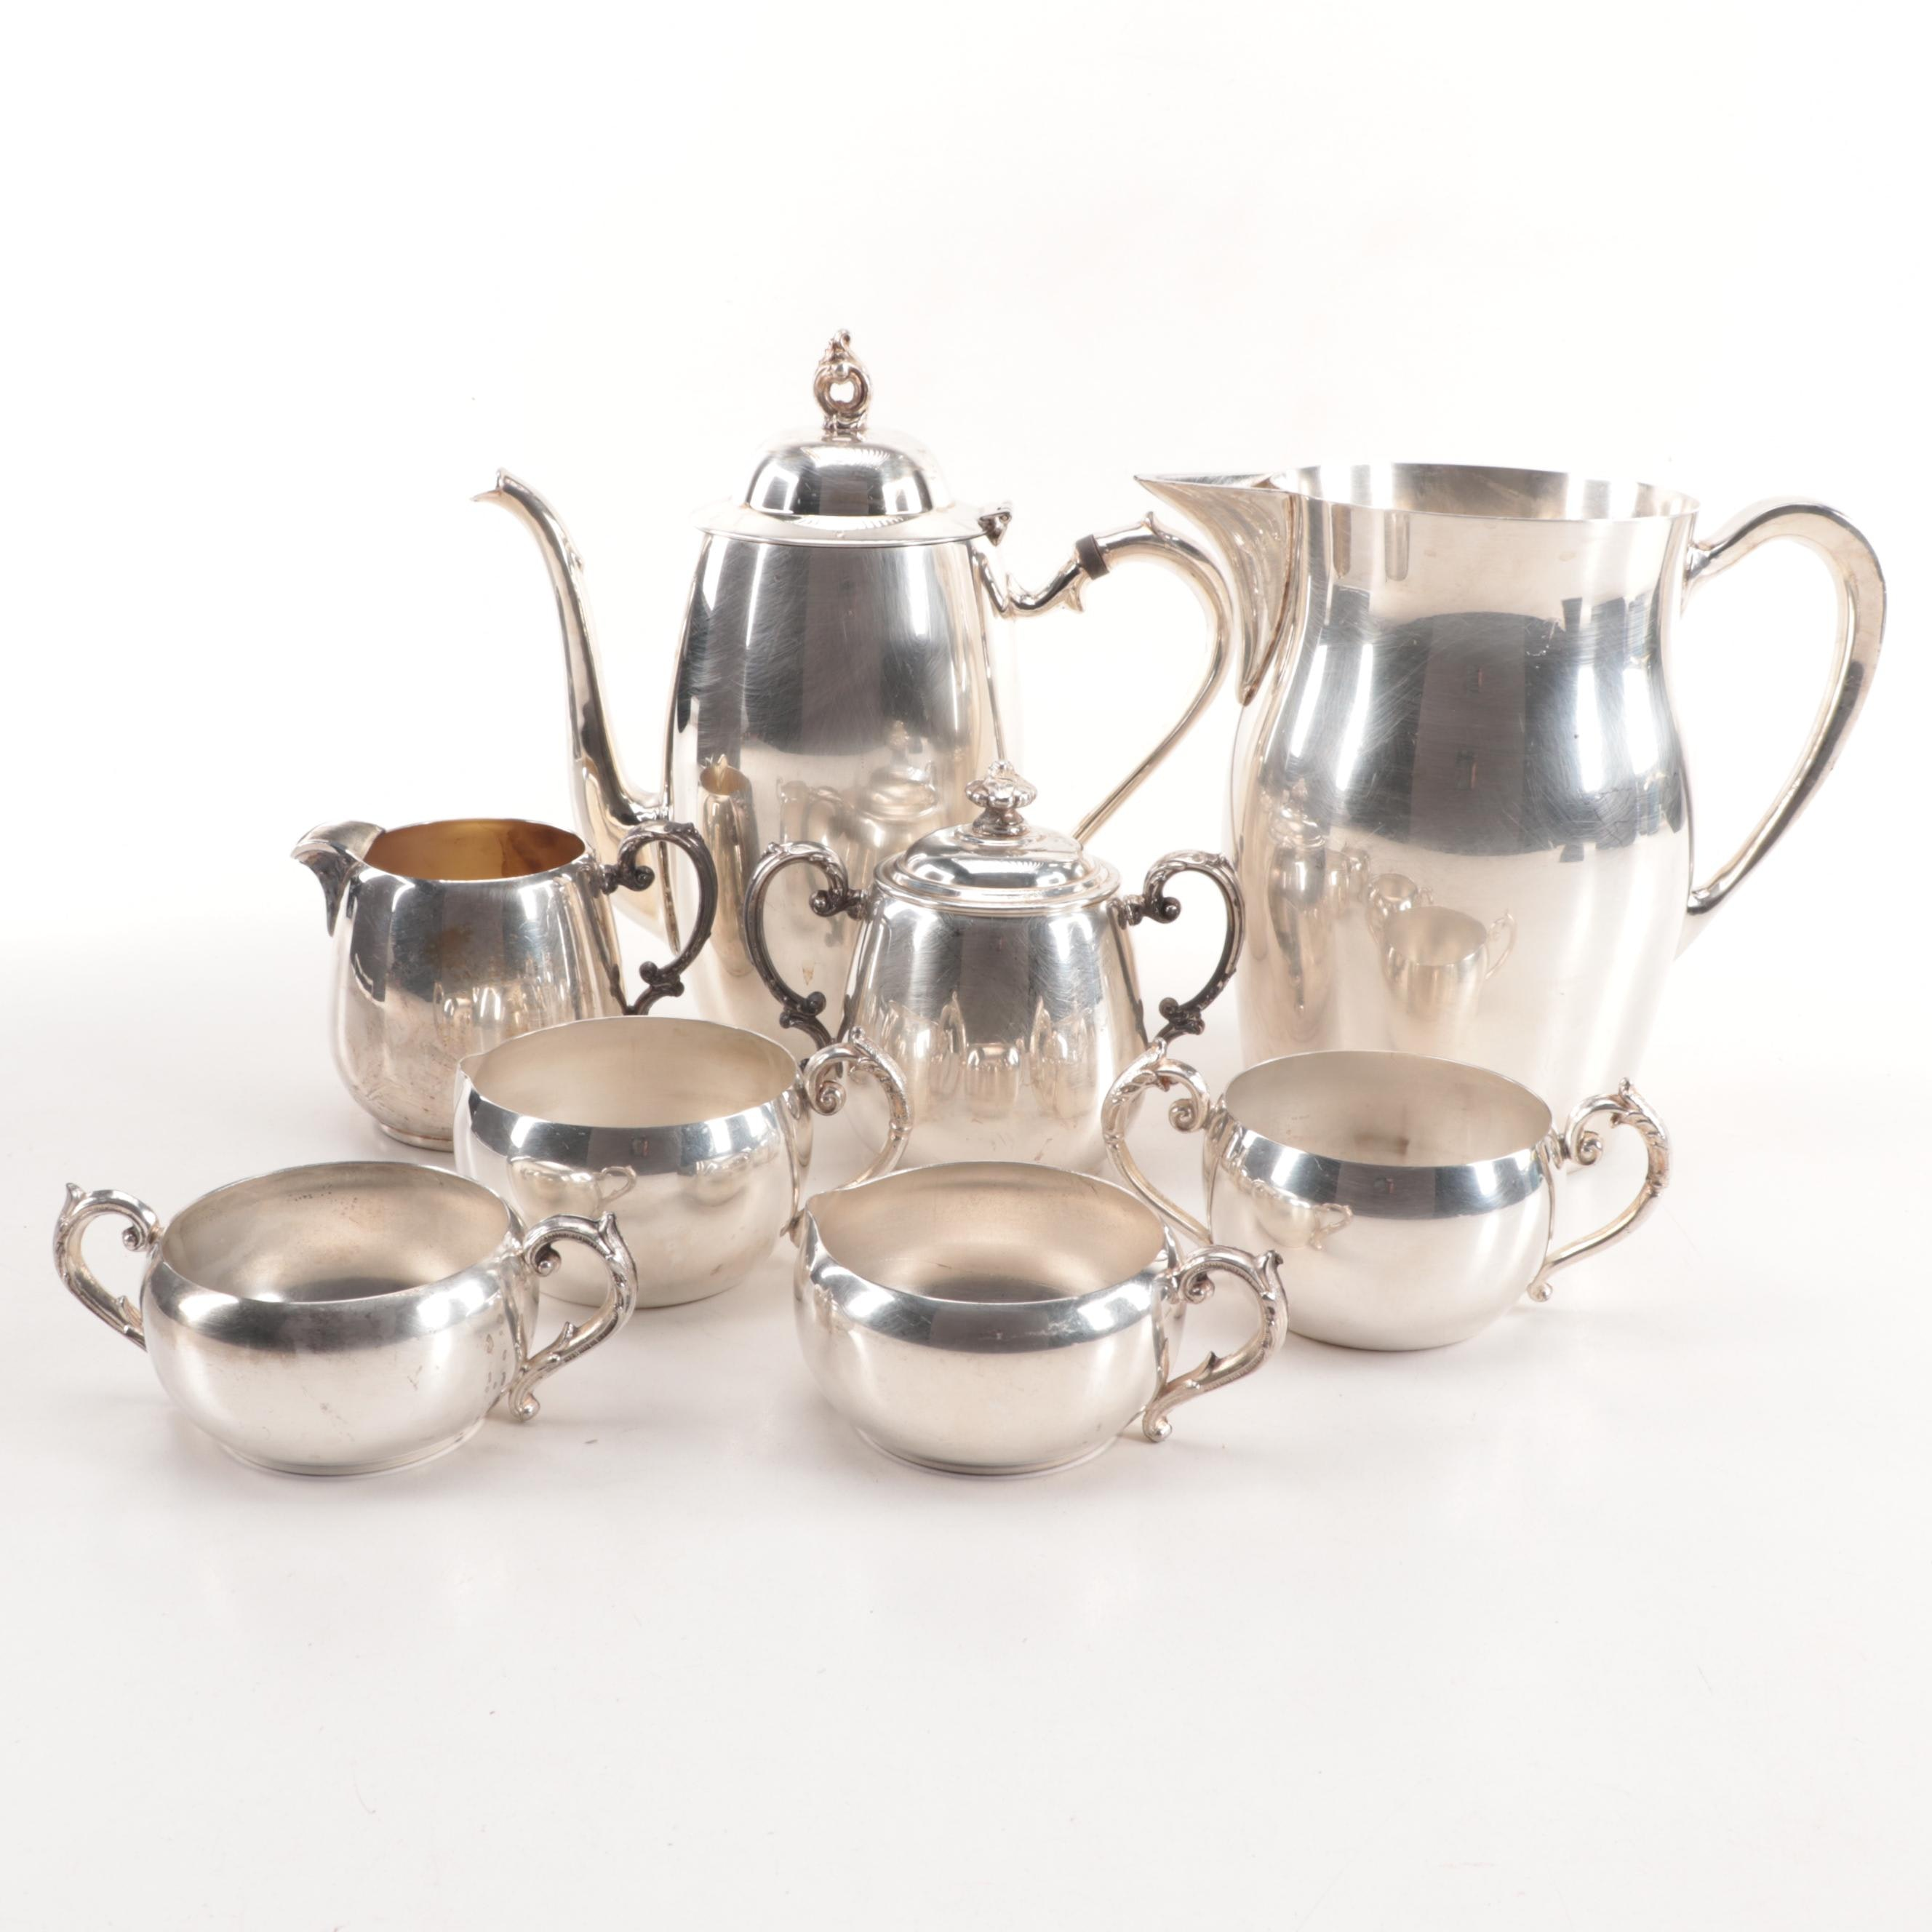 Silver Plate Creamer and Sugar Sets featuring Wm. Rogers with Bristol Pitcher